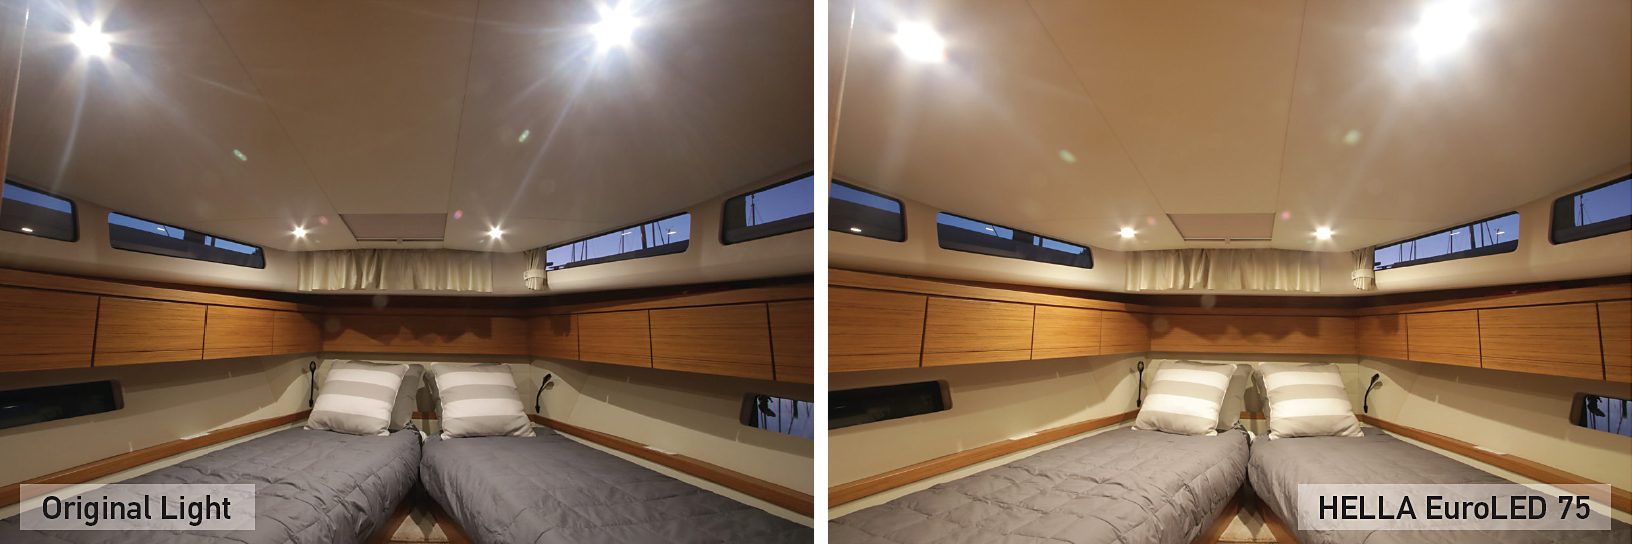 LED Down Light Comparison Cabin